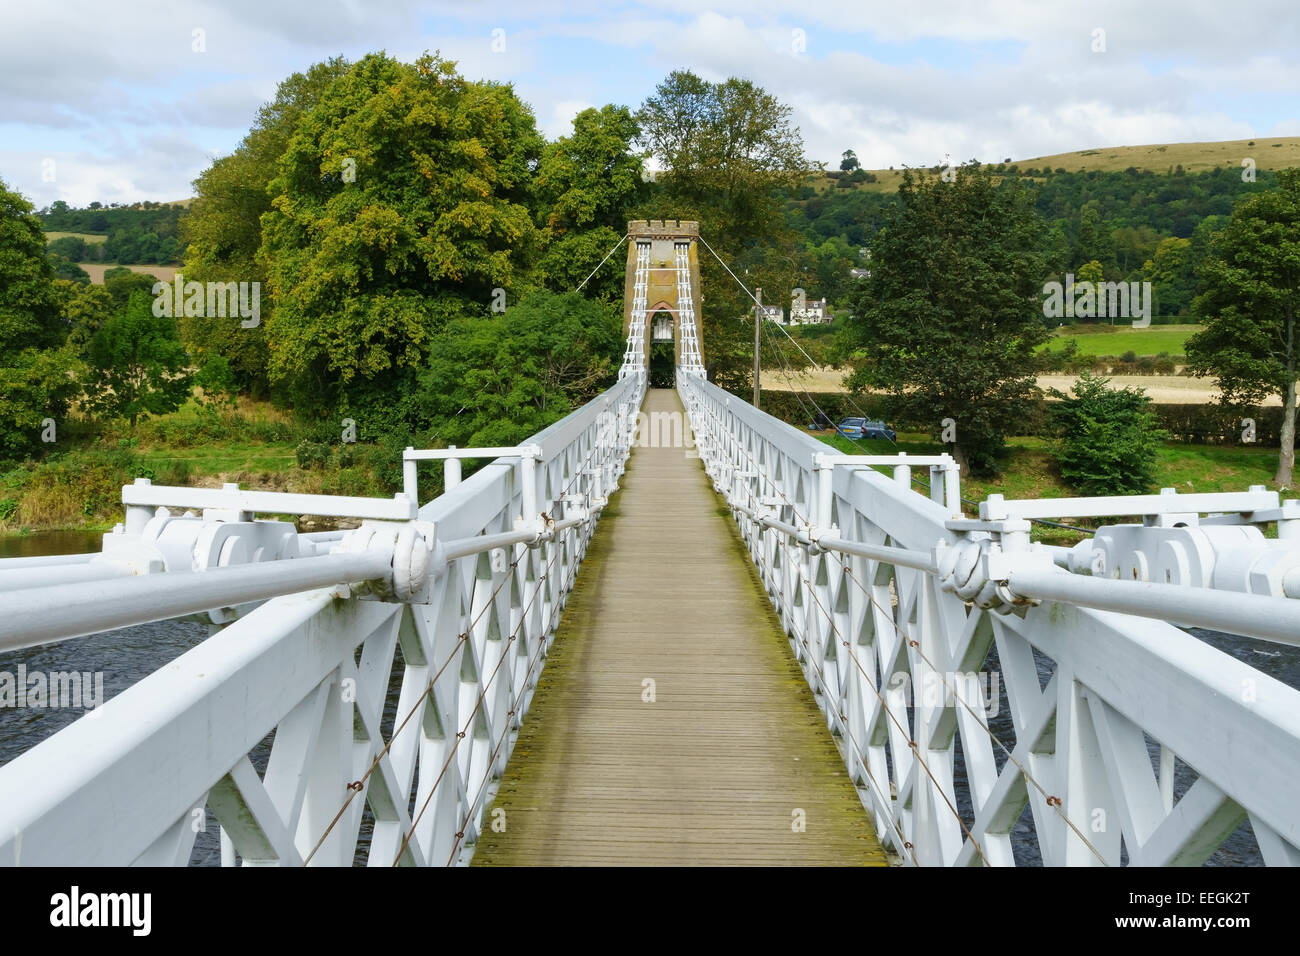 The iron suspension chainbridge across the River Tweed at Melrose, Scottish Borders. - Stock Image